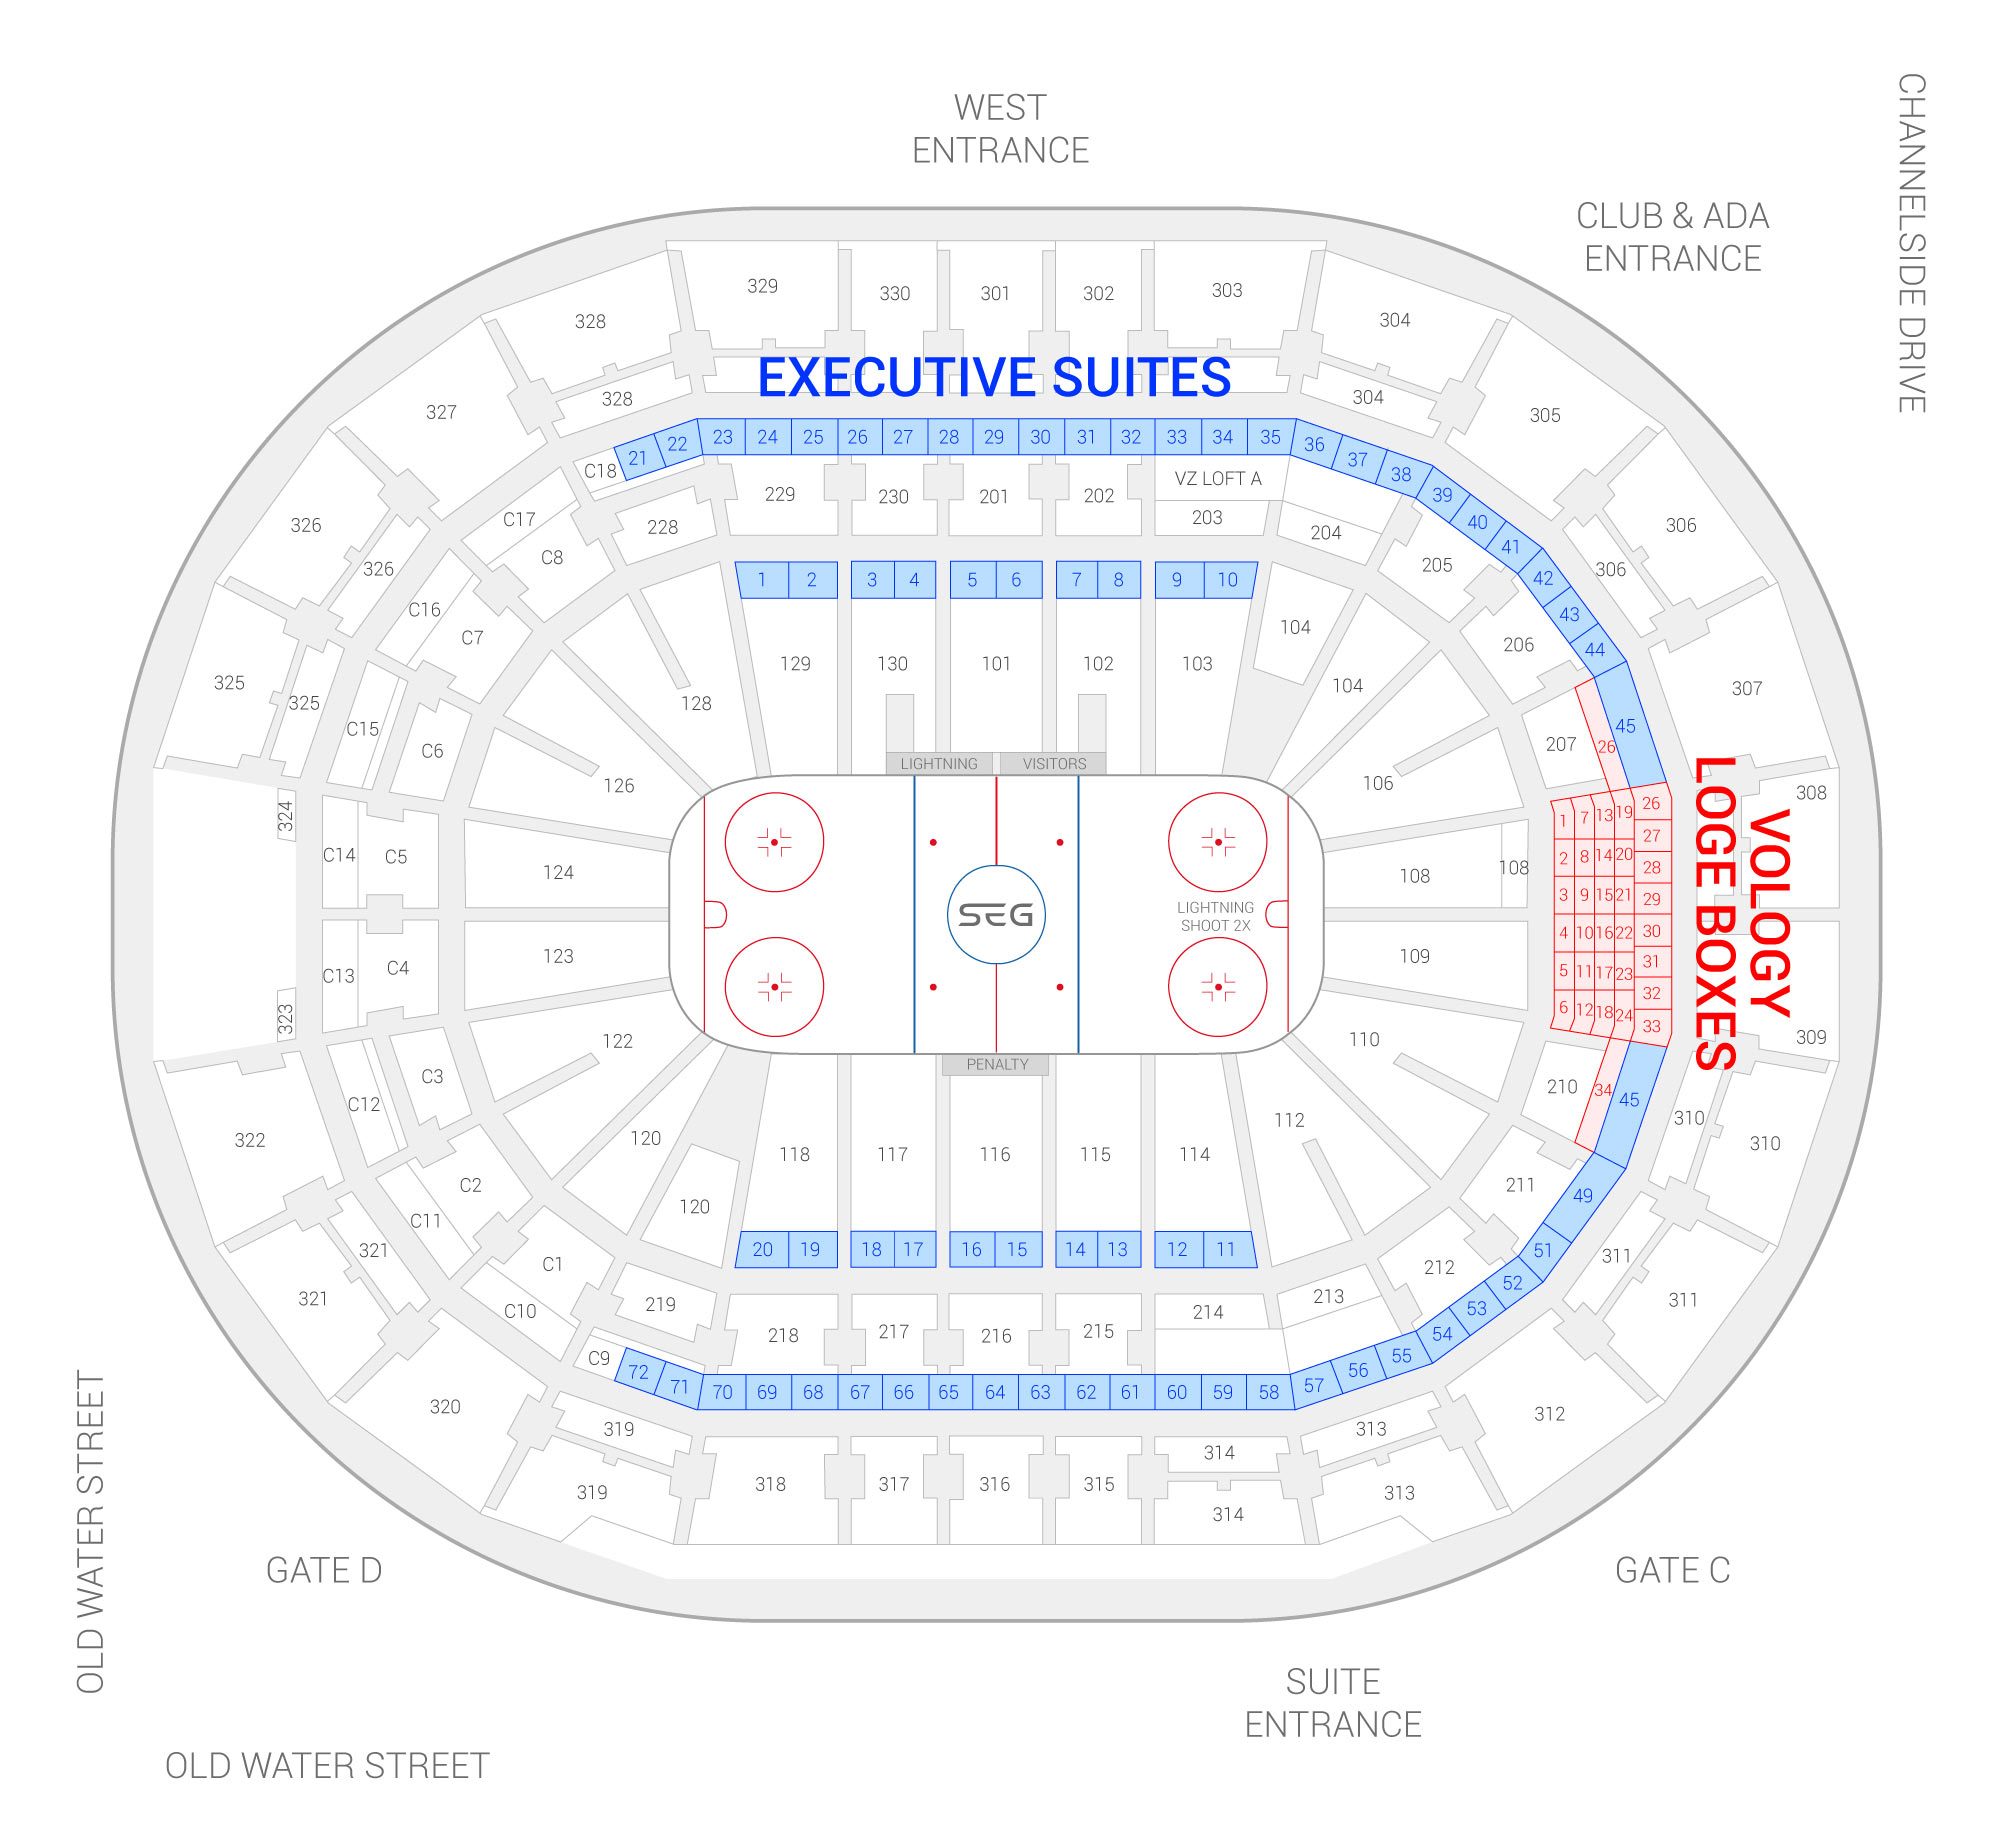 Amalie Arena / Tampa Bay Lightning Suite Map and Seating Chart